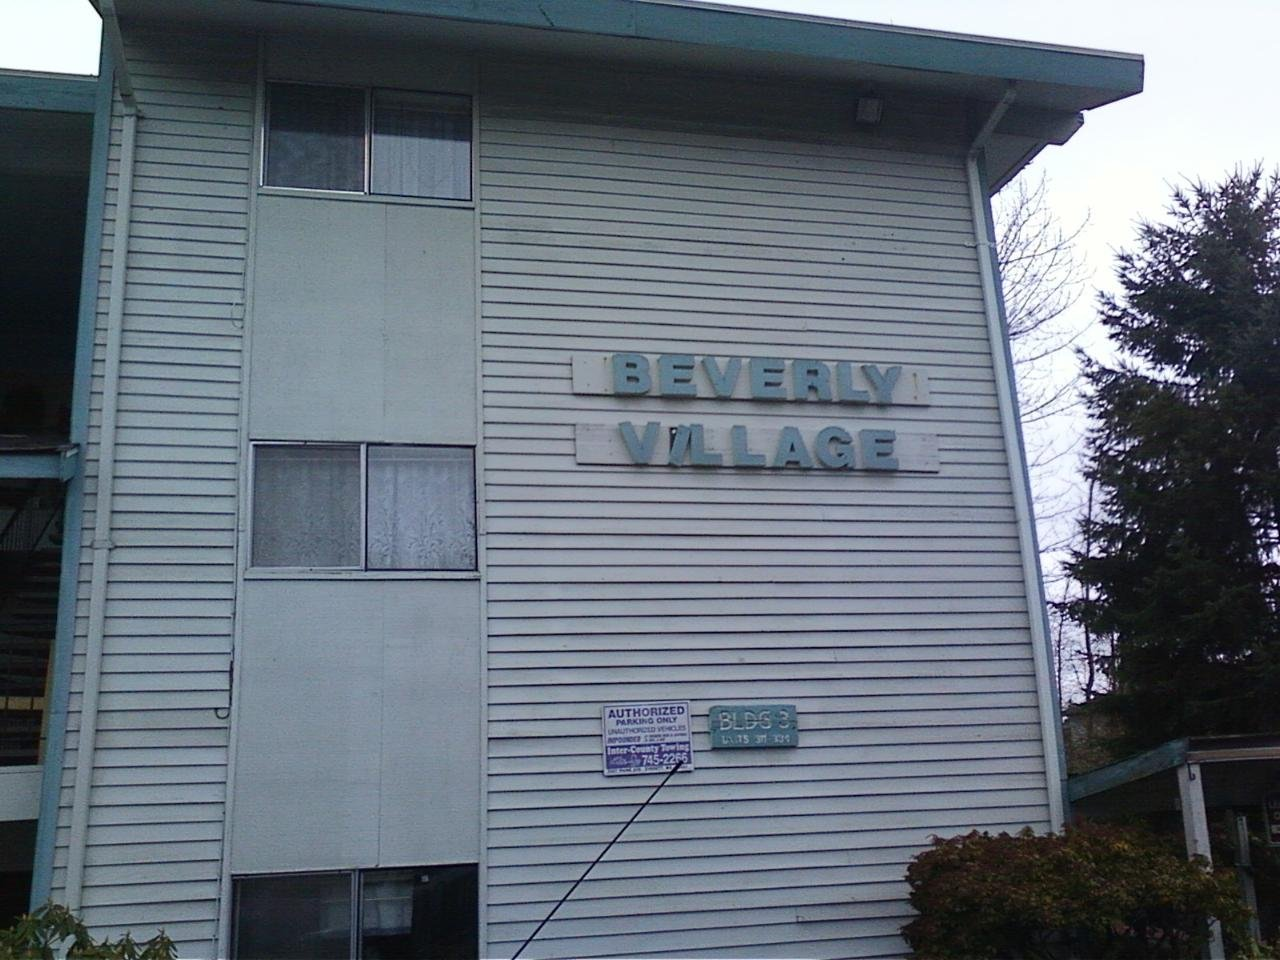 low income apartments poulsbo wa. beverly village low income apartments poulsbo wa